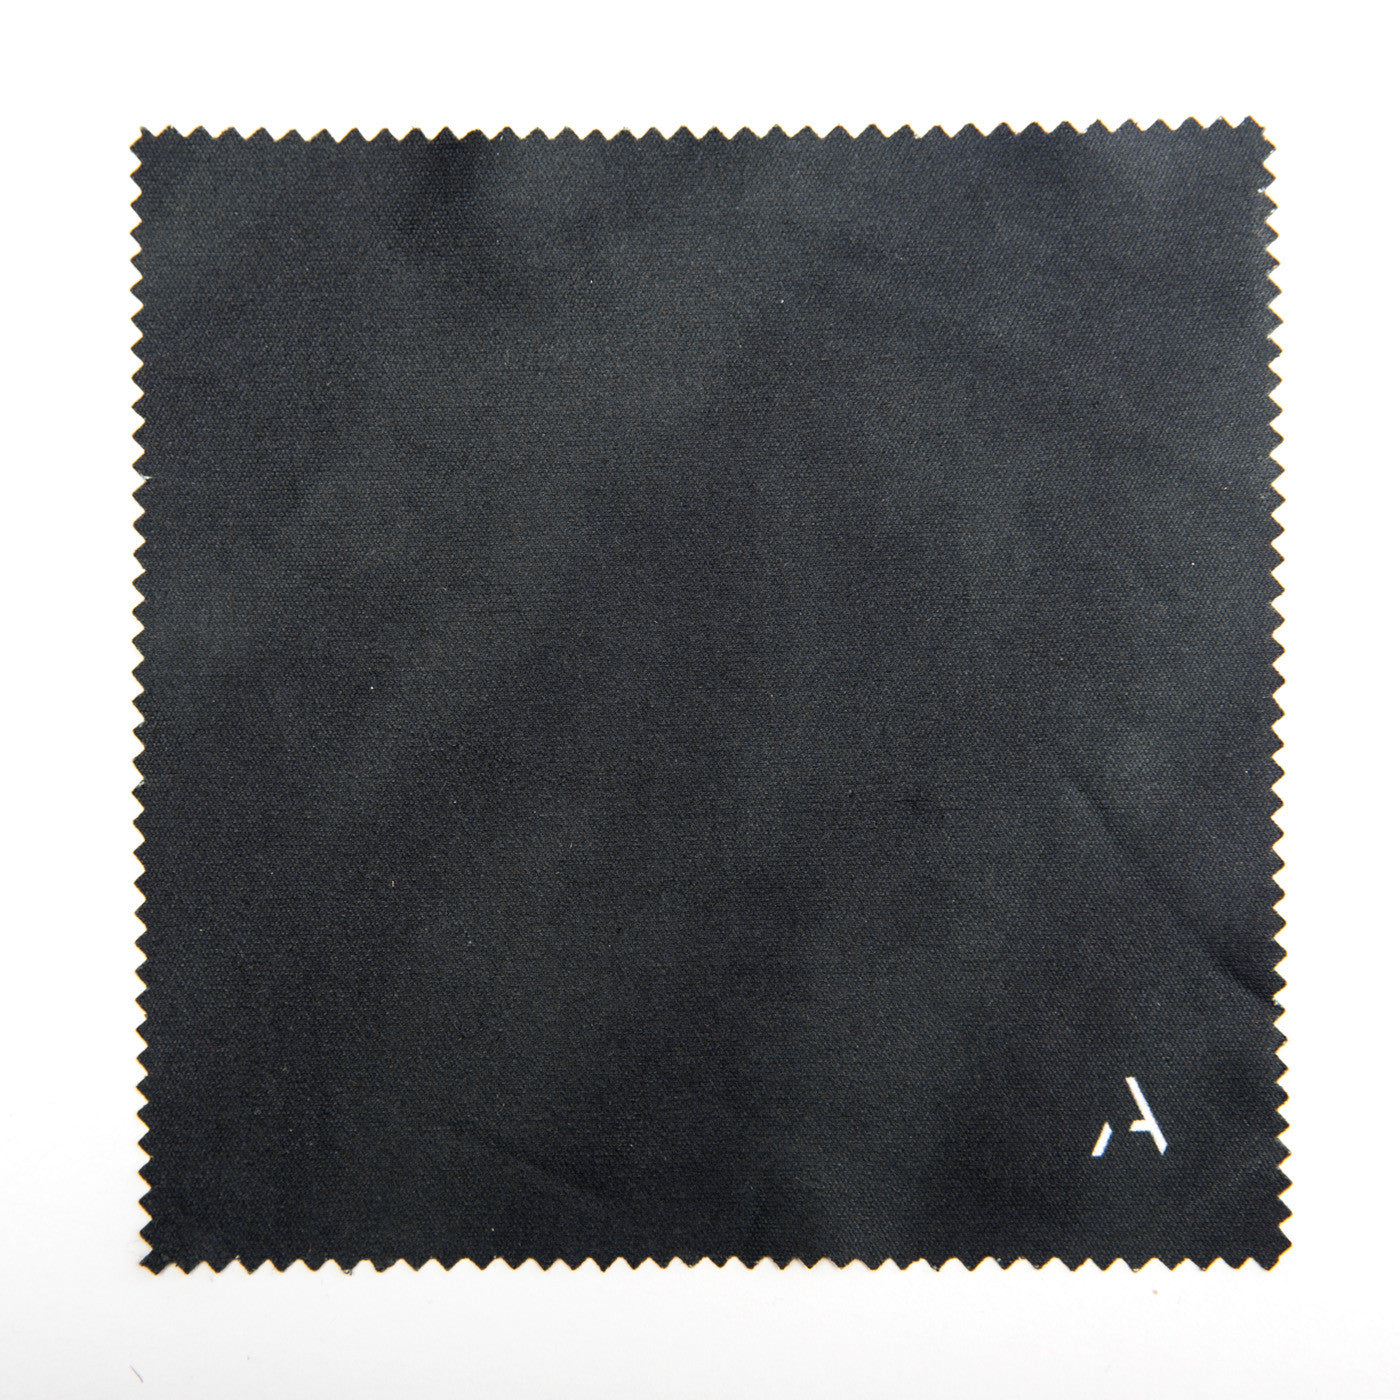 ONE MICRO-FIBER CLEANING CLOTH<br>(for that extra shine)